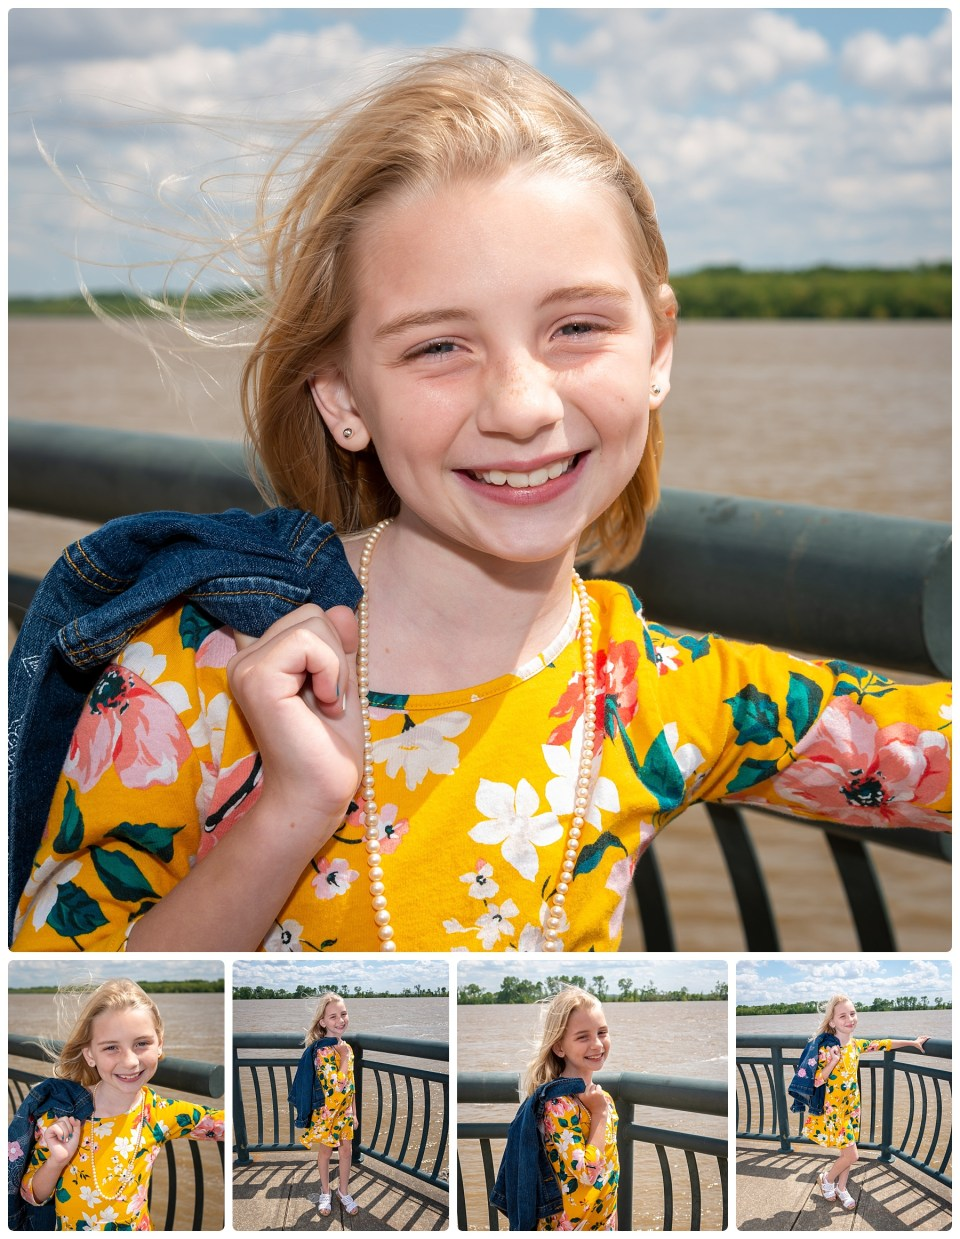 Girl smiles while getting her picture taken during her outdoor photography session.